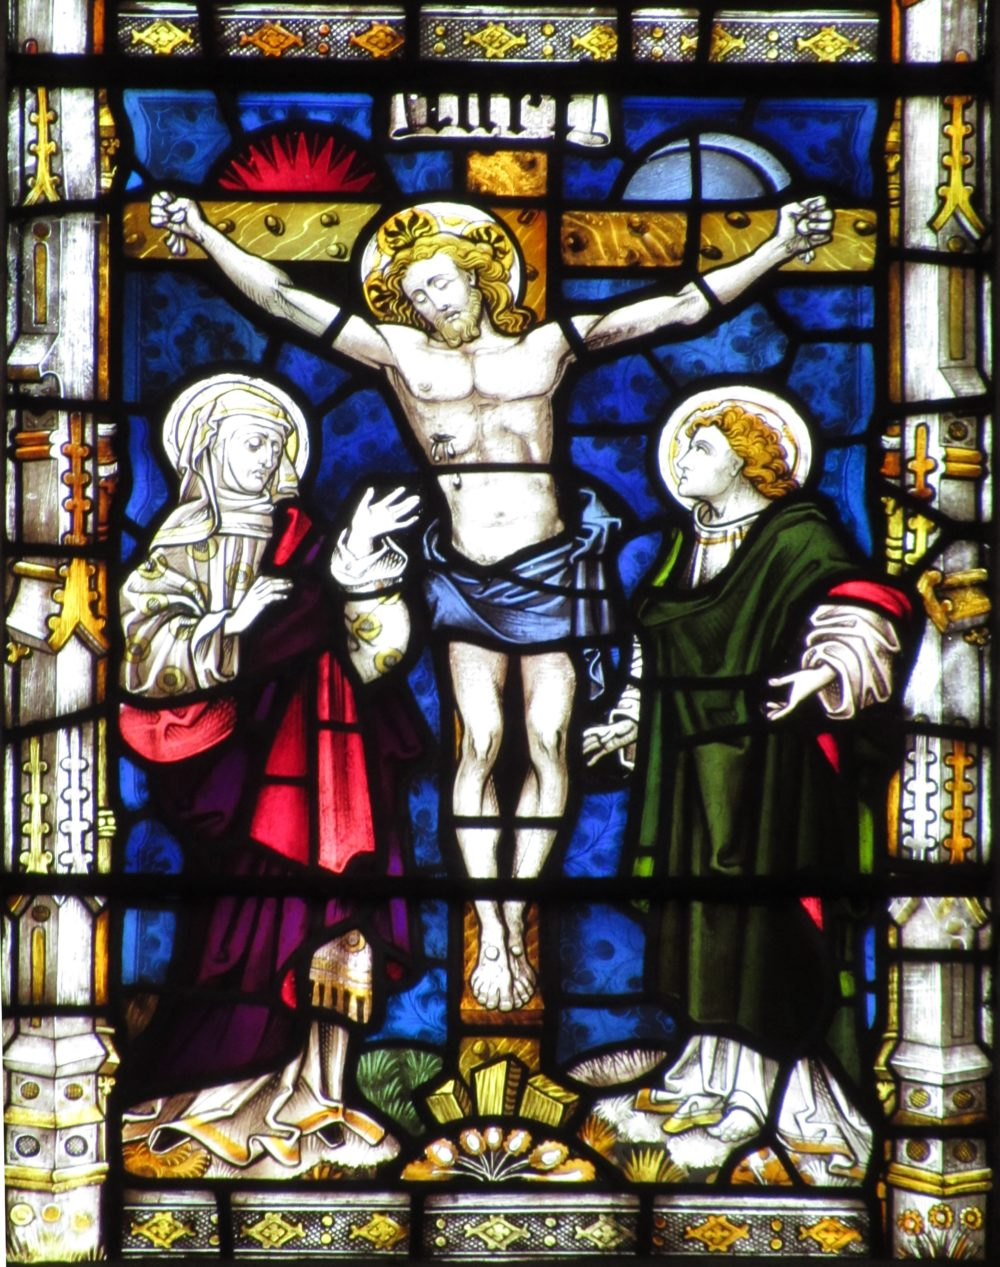 Detail of Christ's Crucifixion from a stained glass window in Bath Abbey